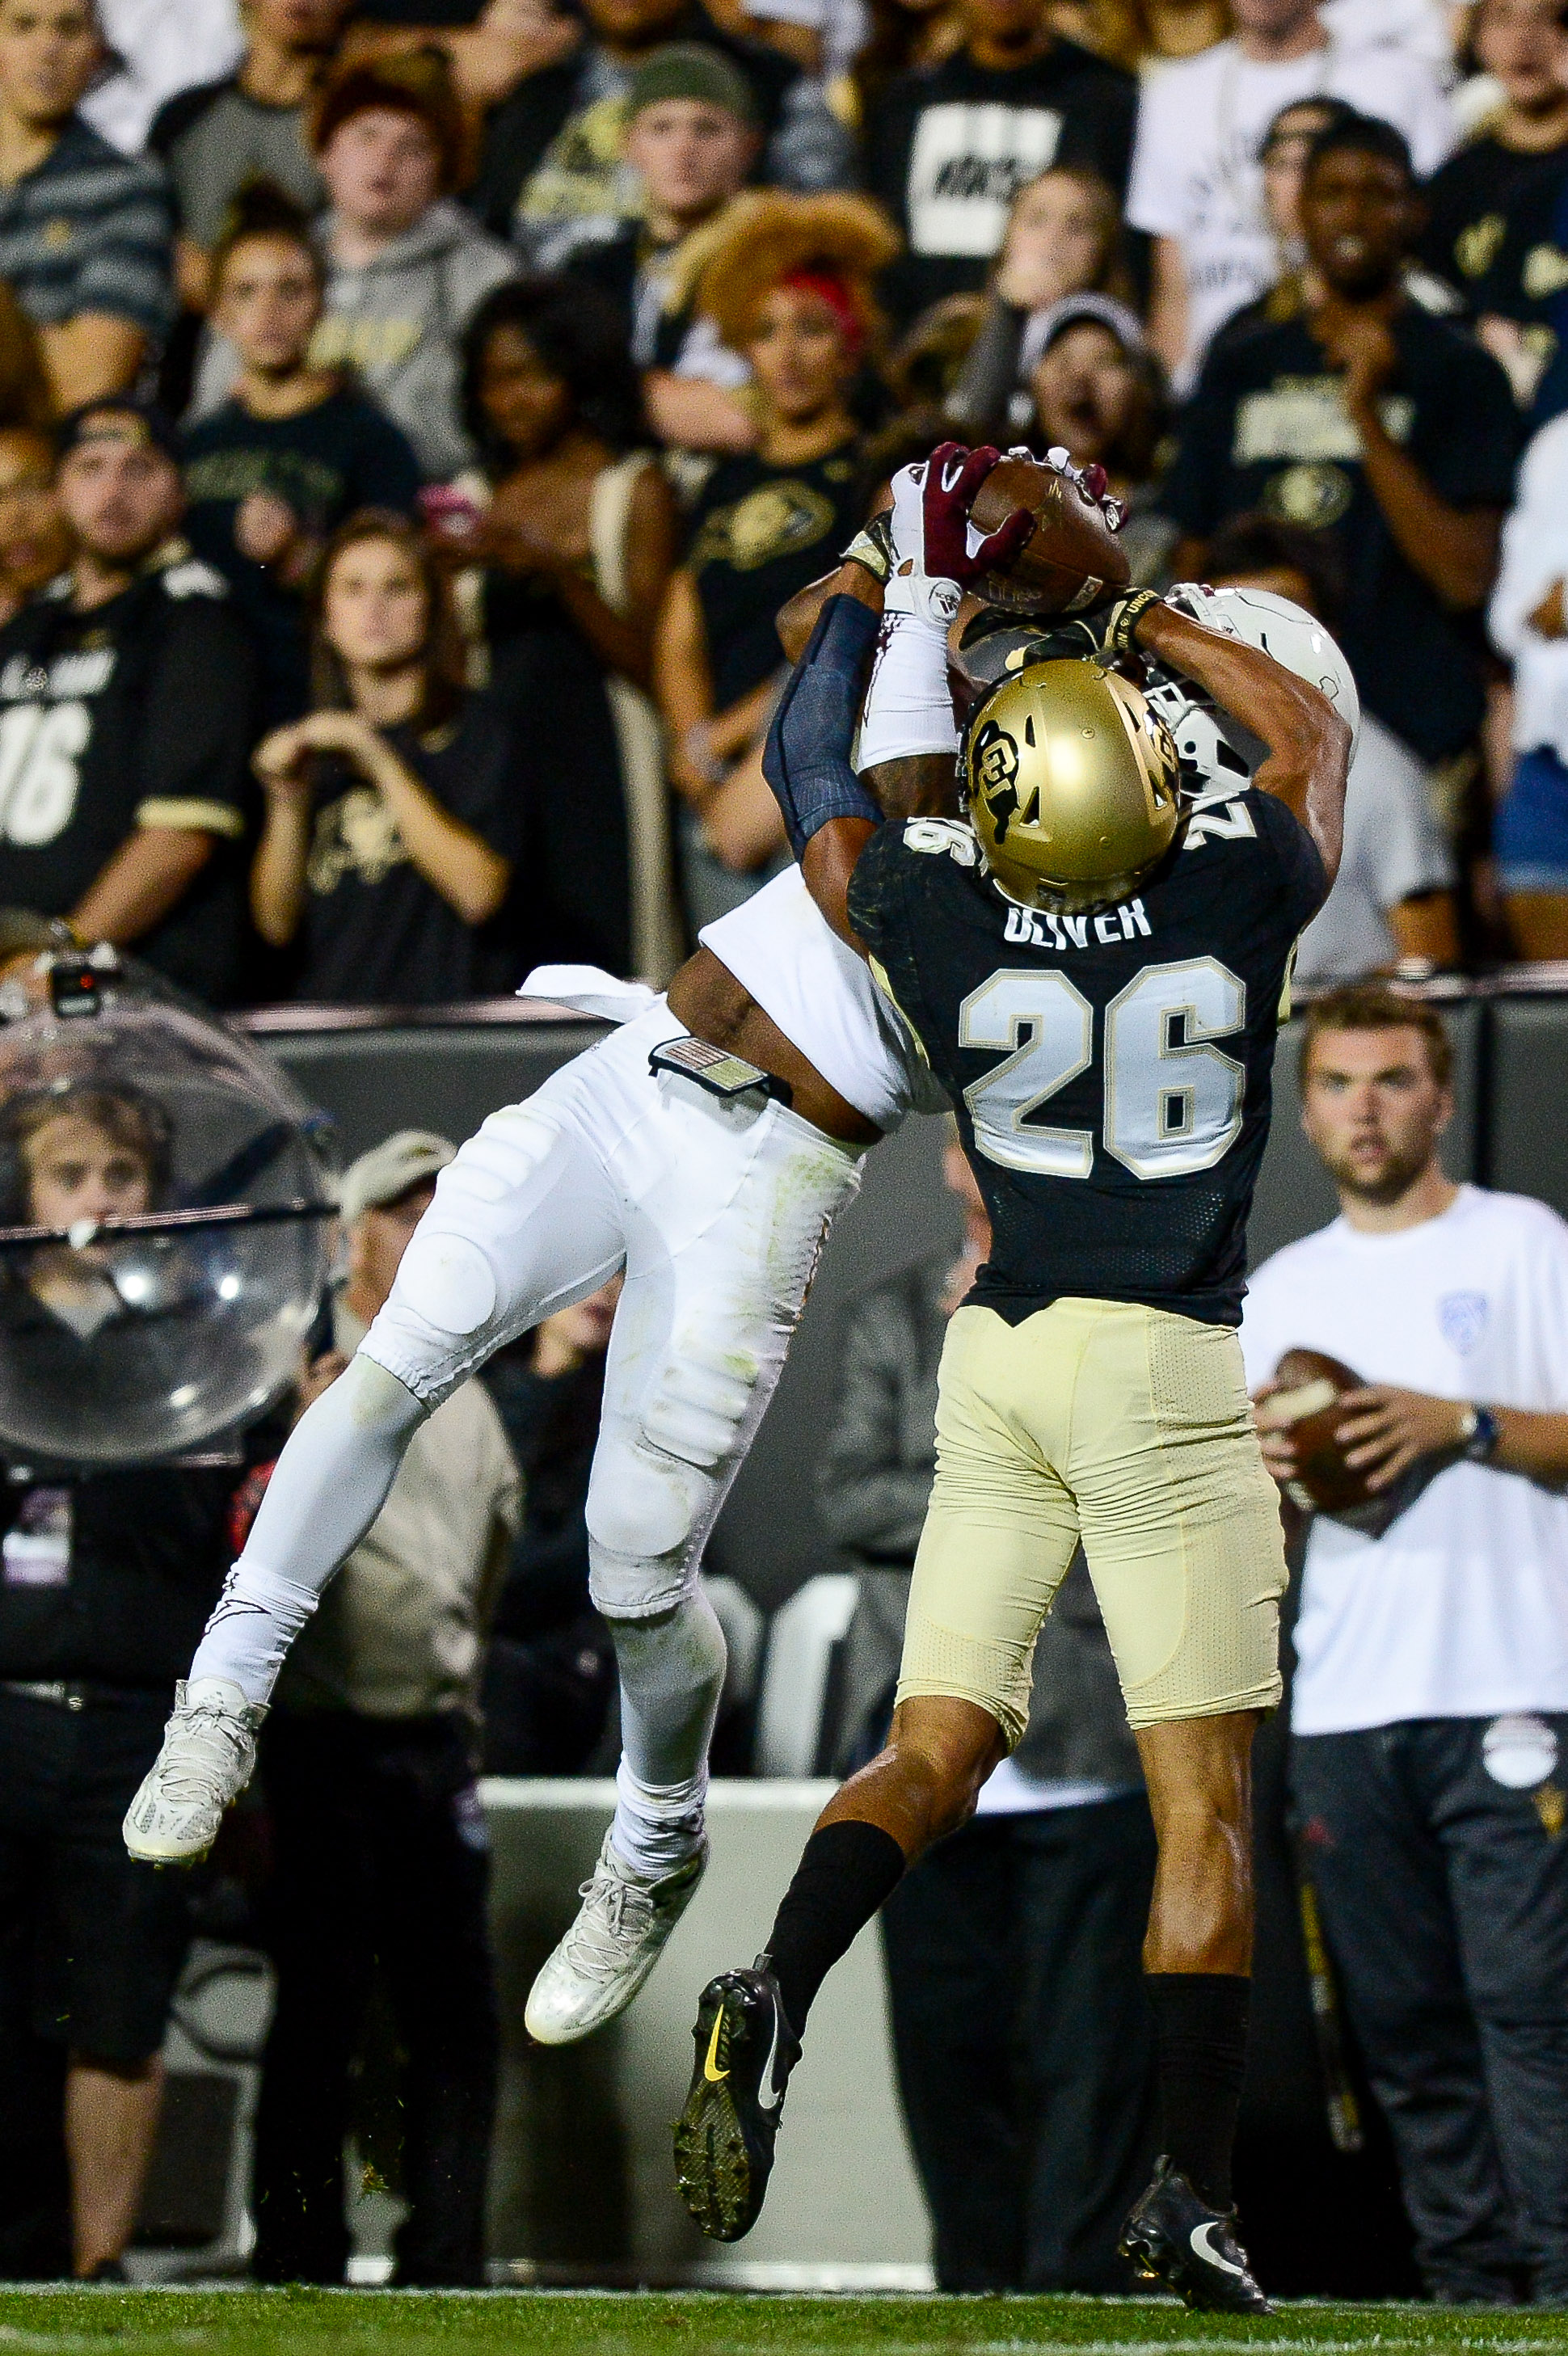 Colorado CB Isaiah Oliver defends a pass against Arizona St. WR N'Keal Harry